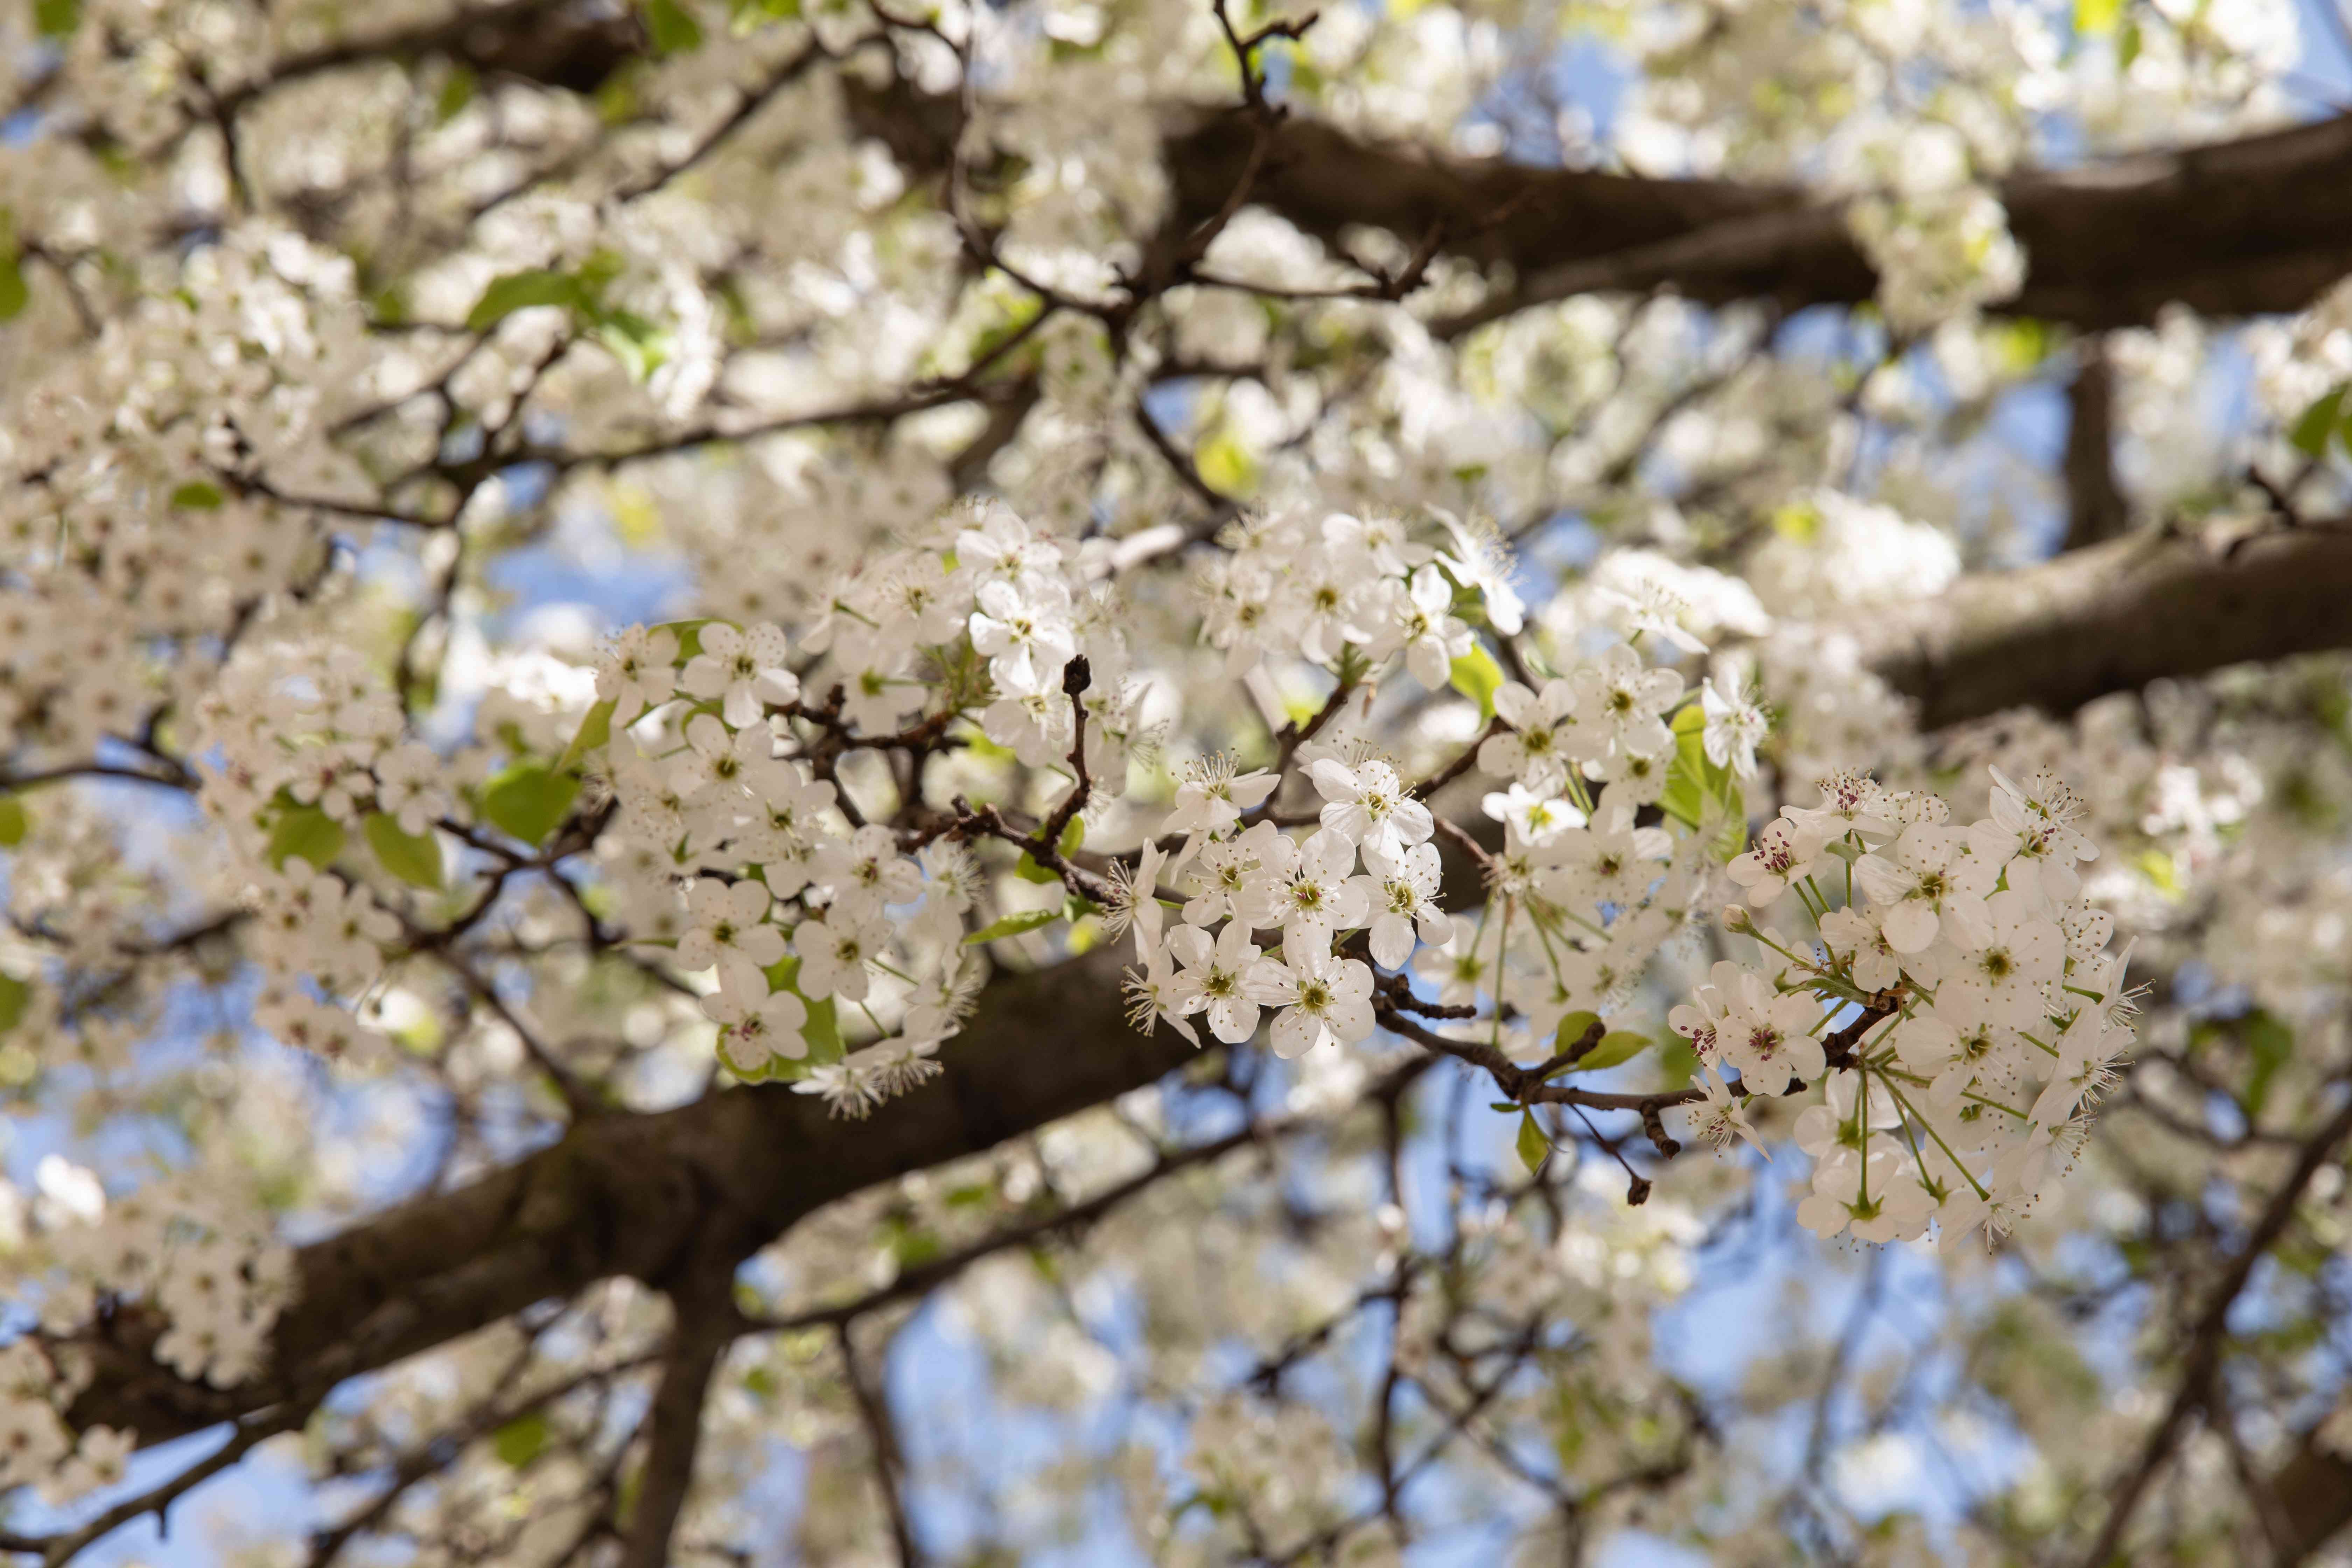 Calley pear tree branch with small white flower blossoms clustered together closeup